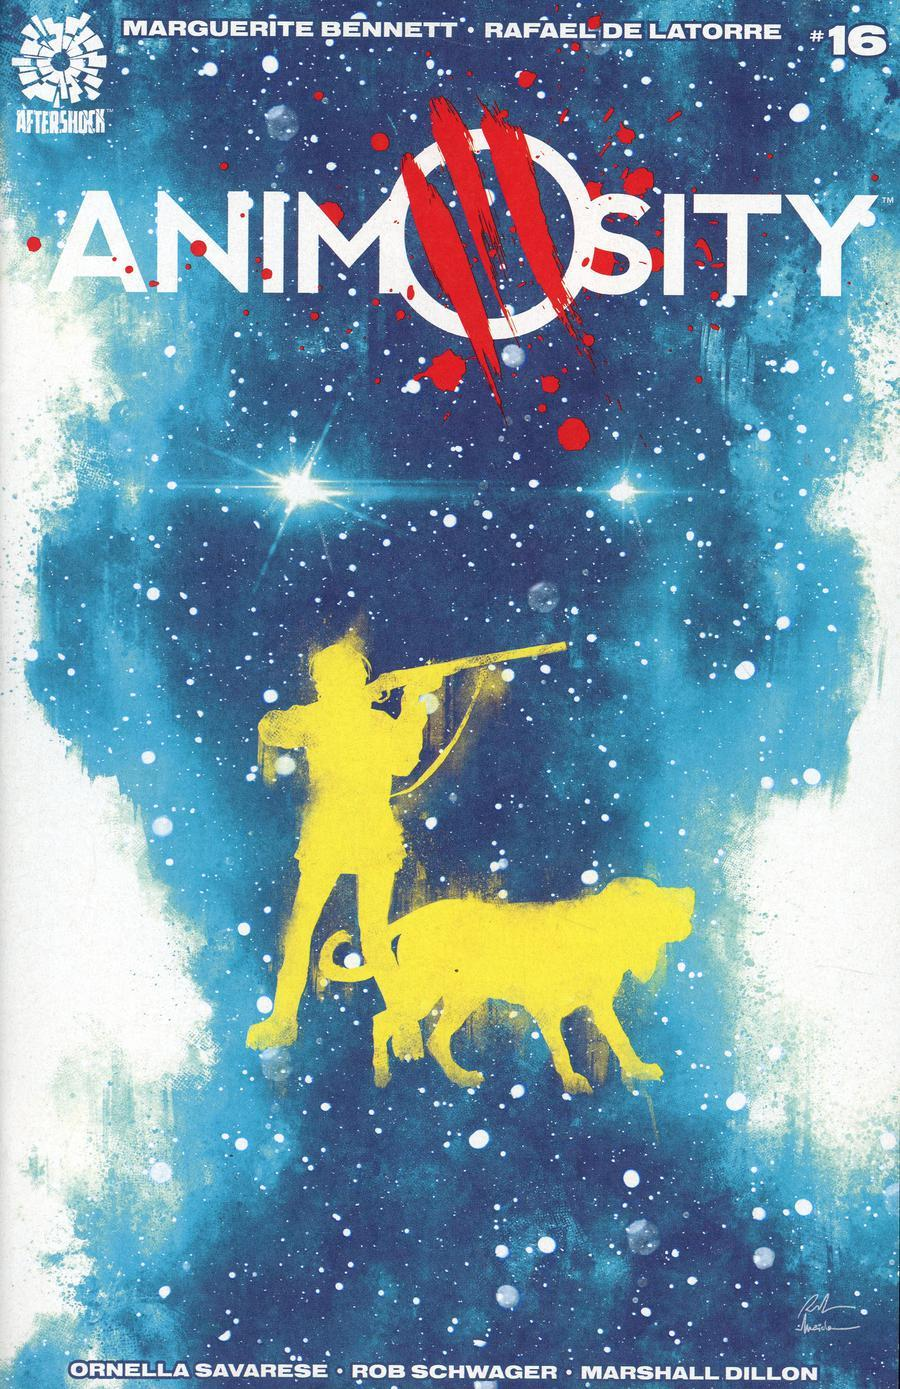 Animosity Vol. 1 #16